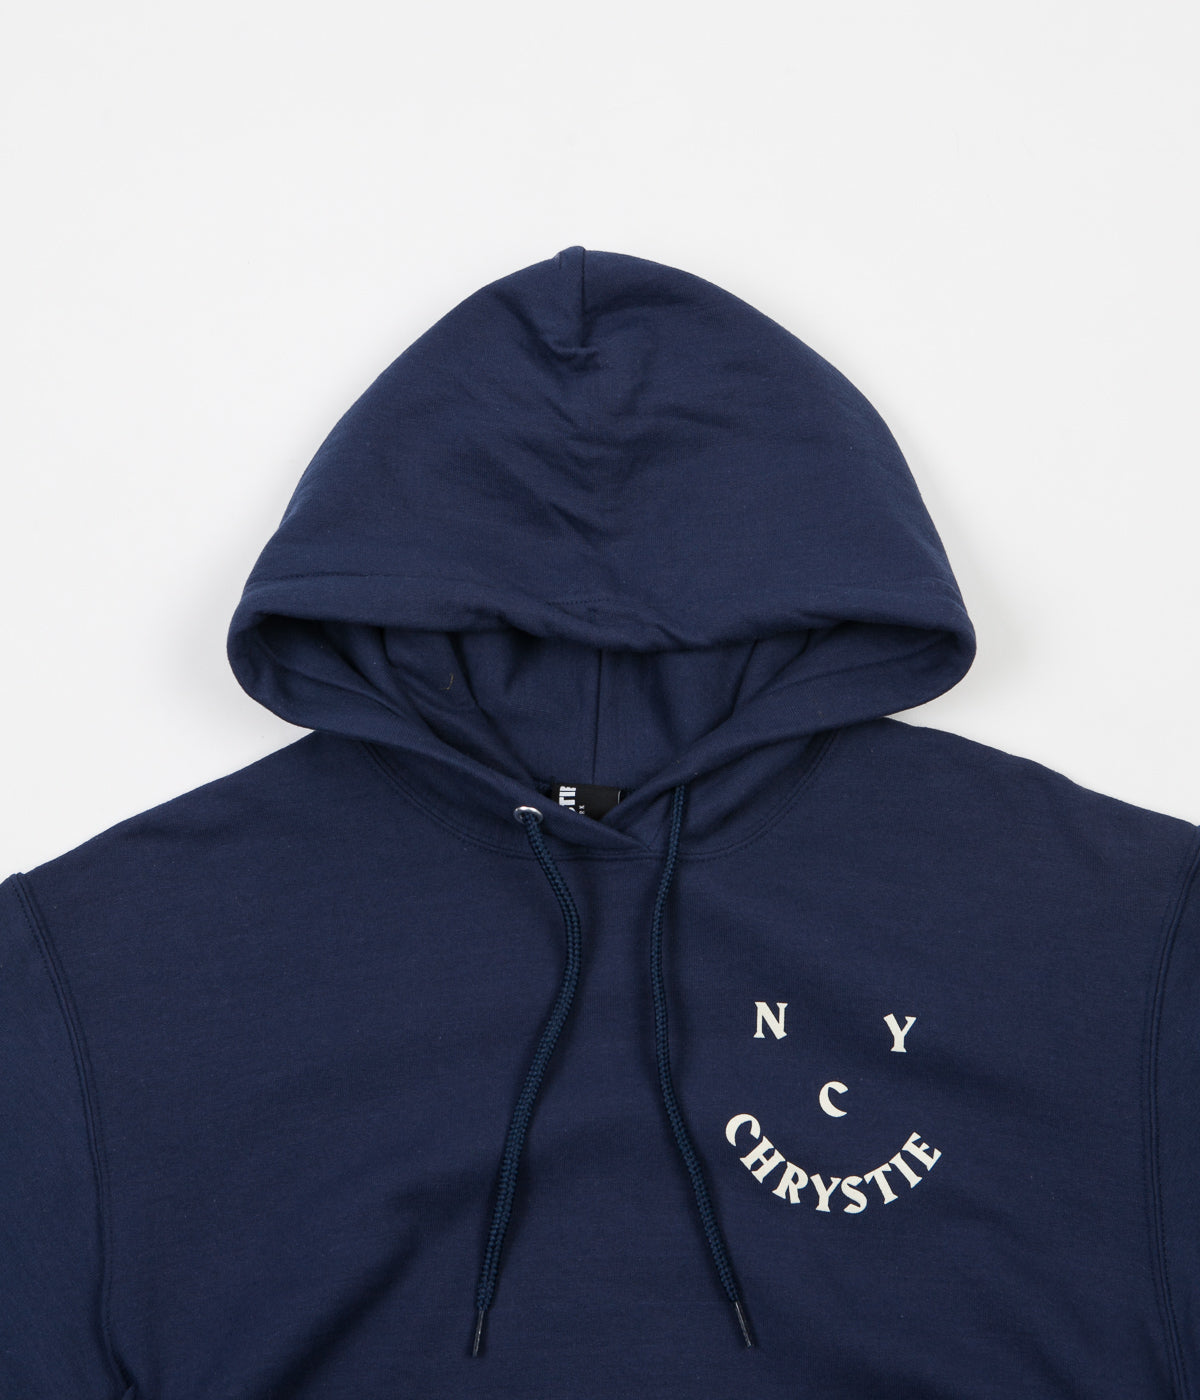 Chrystie NYC Smile Logo Hoodie - Harbour Blue